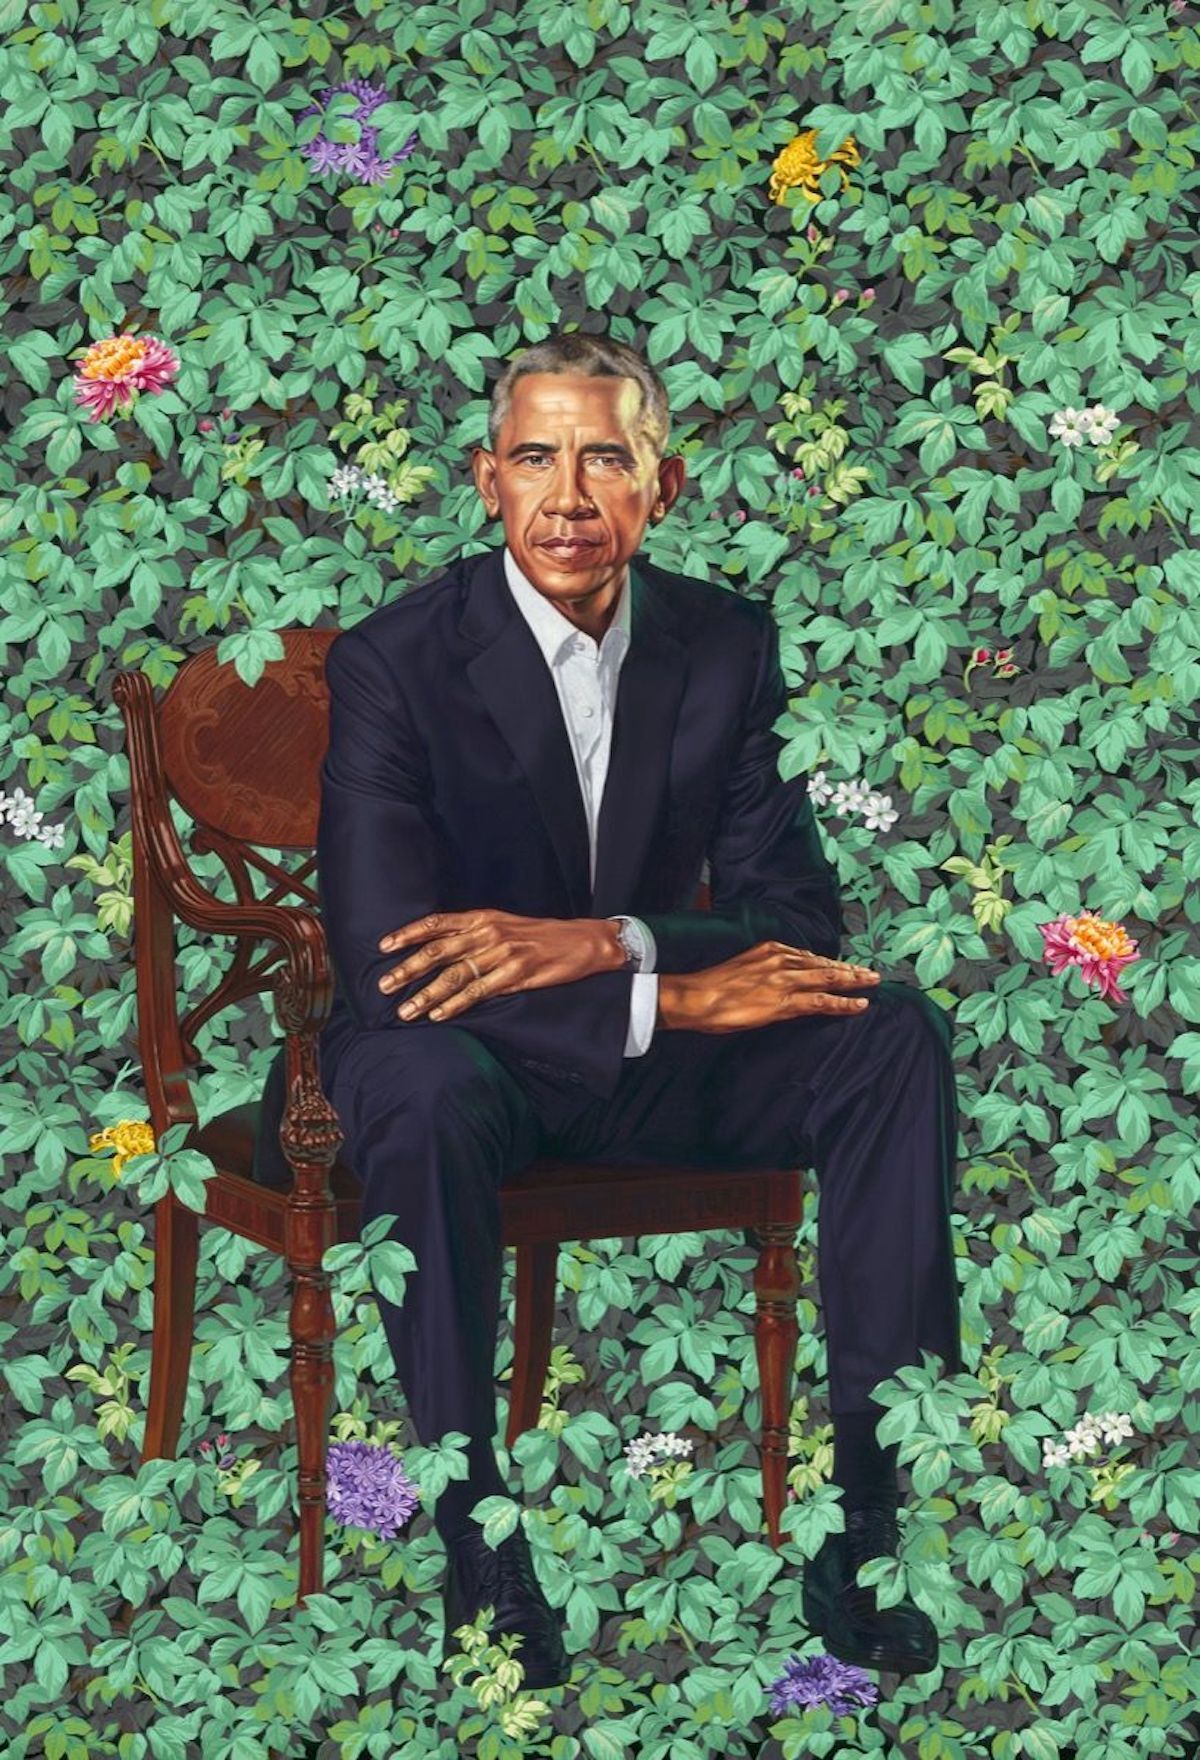 Kehinde Wiley, Barack Obama, 2018. © 2018 Kehinde Wiley. Courtesy of the National Portrait Gallery, Washington D.C.